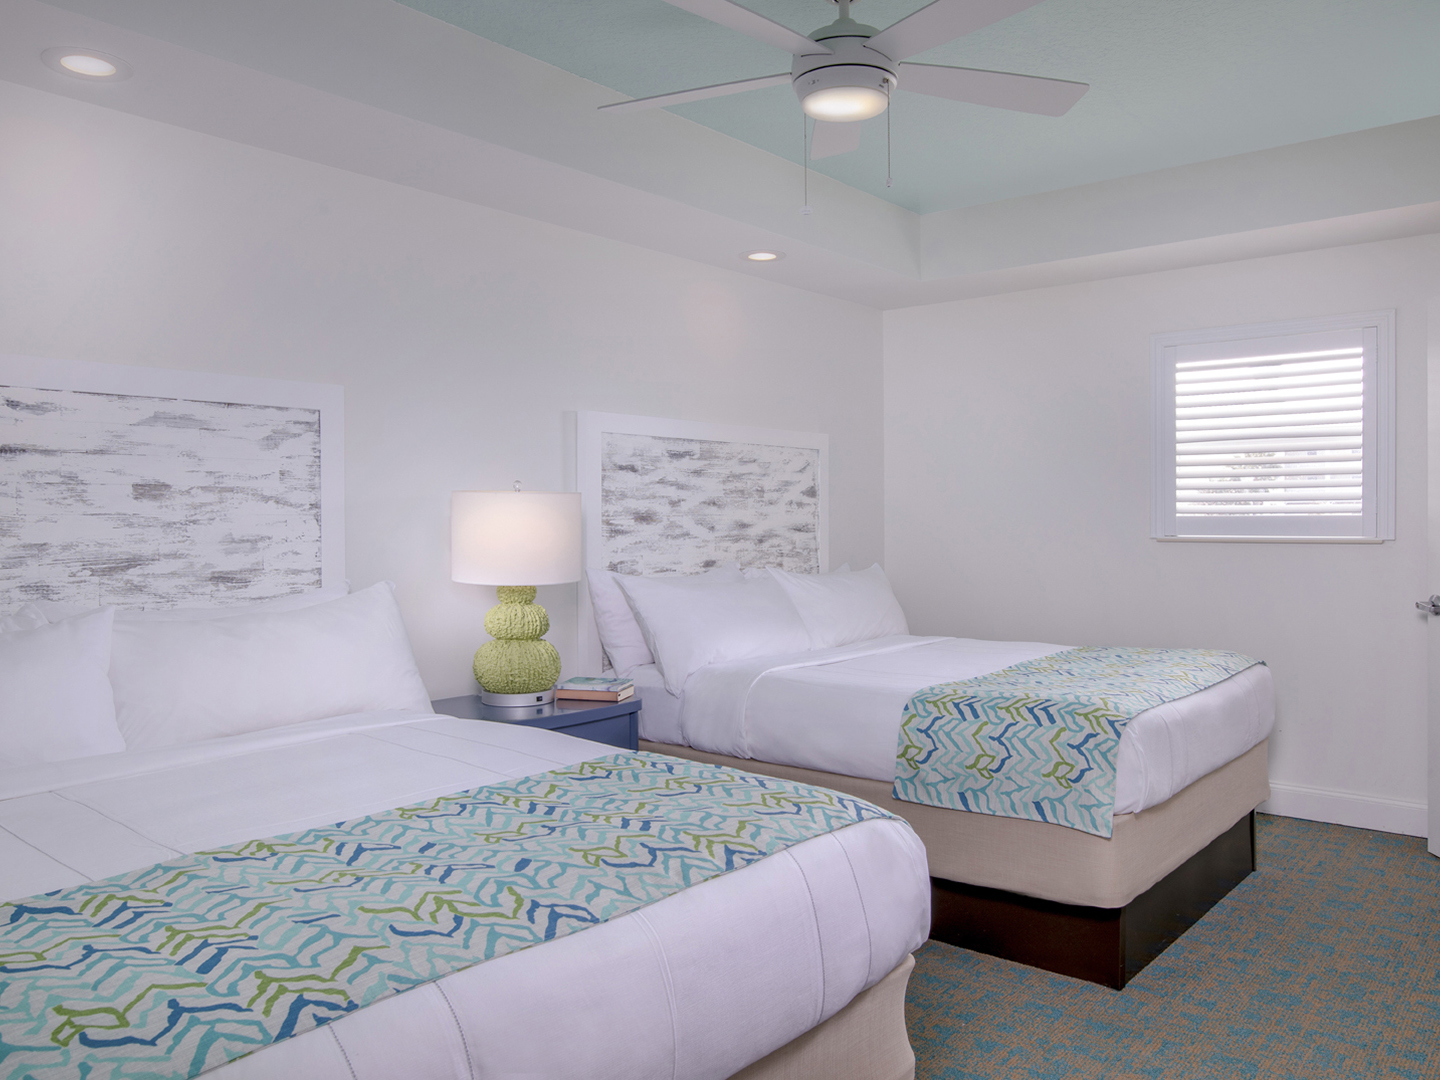 Marriott's Harbour Lake Guest Bedroom. Marriott's Harbour Lake is located in Orlando, Florida United States.